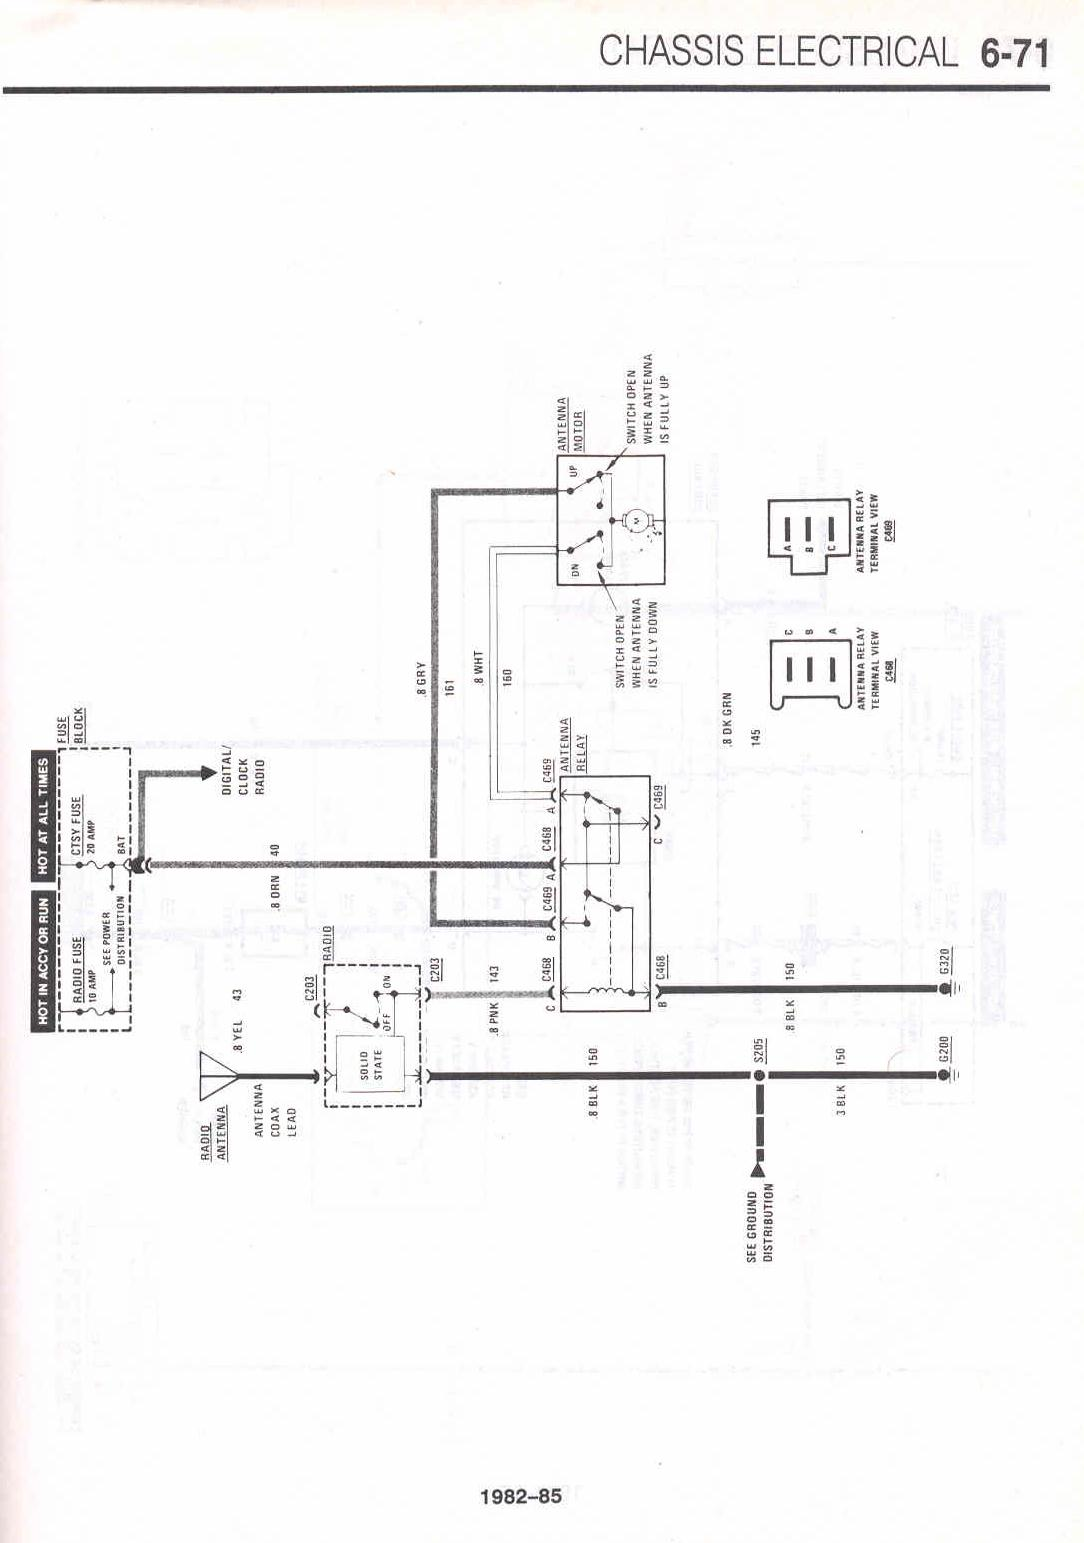 84 camaro battery wire diagram  84  free engine image for